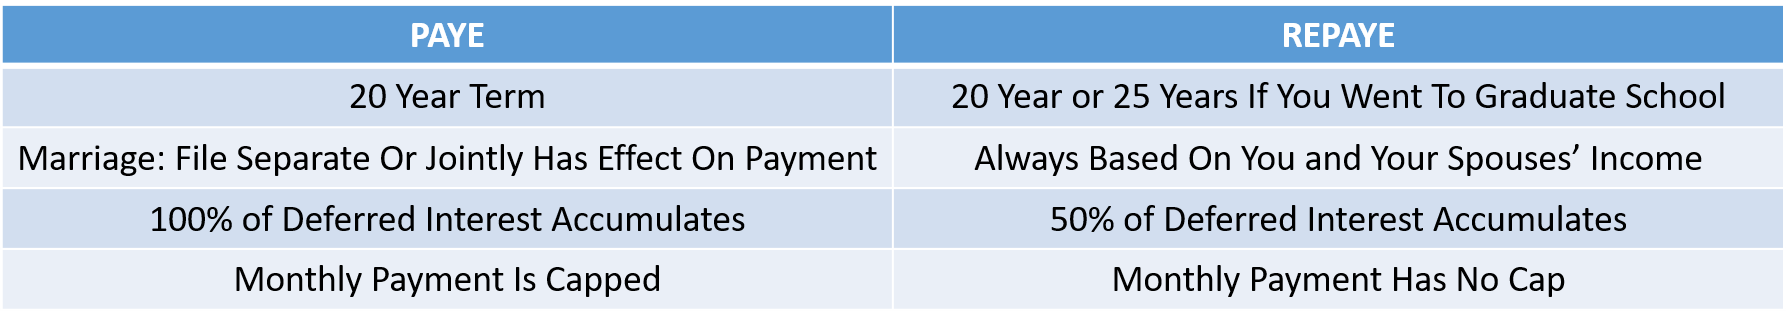 PAYE vs REPAYE Summary of Differences